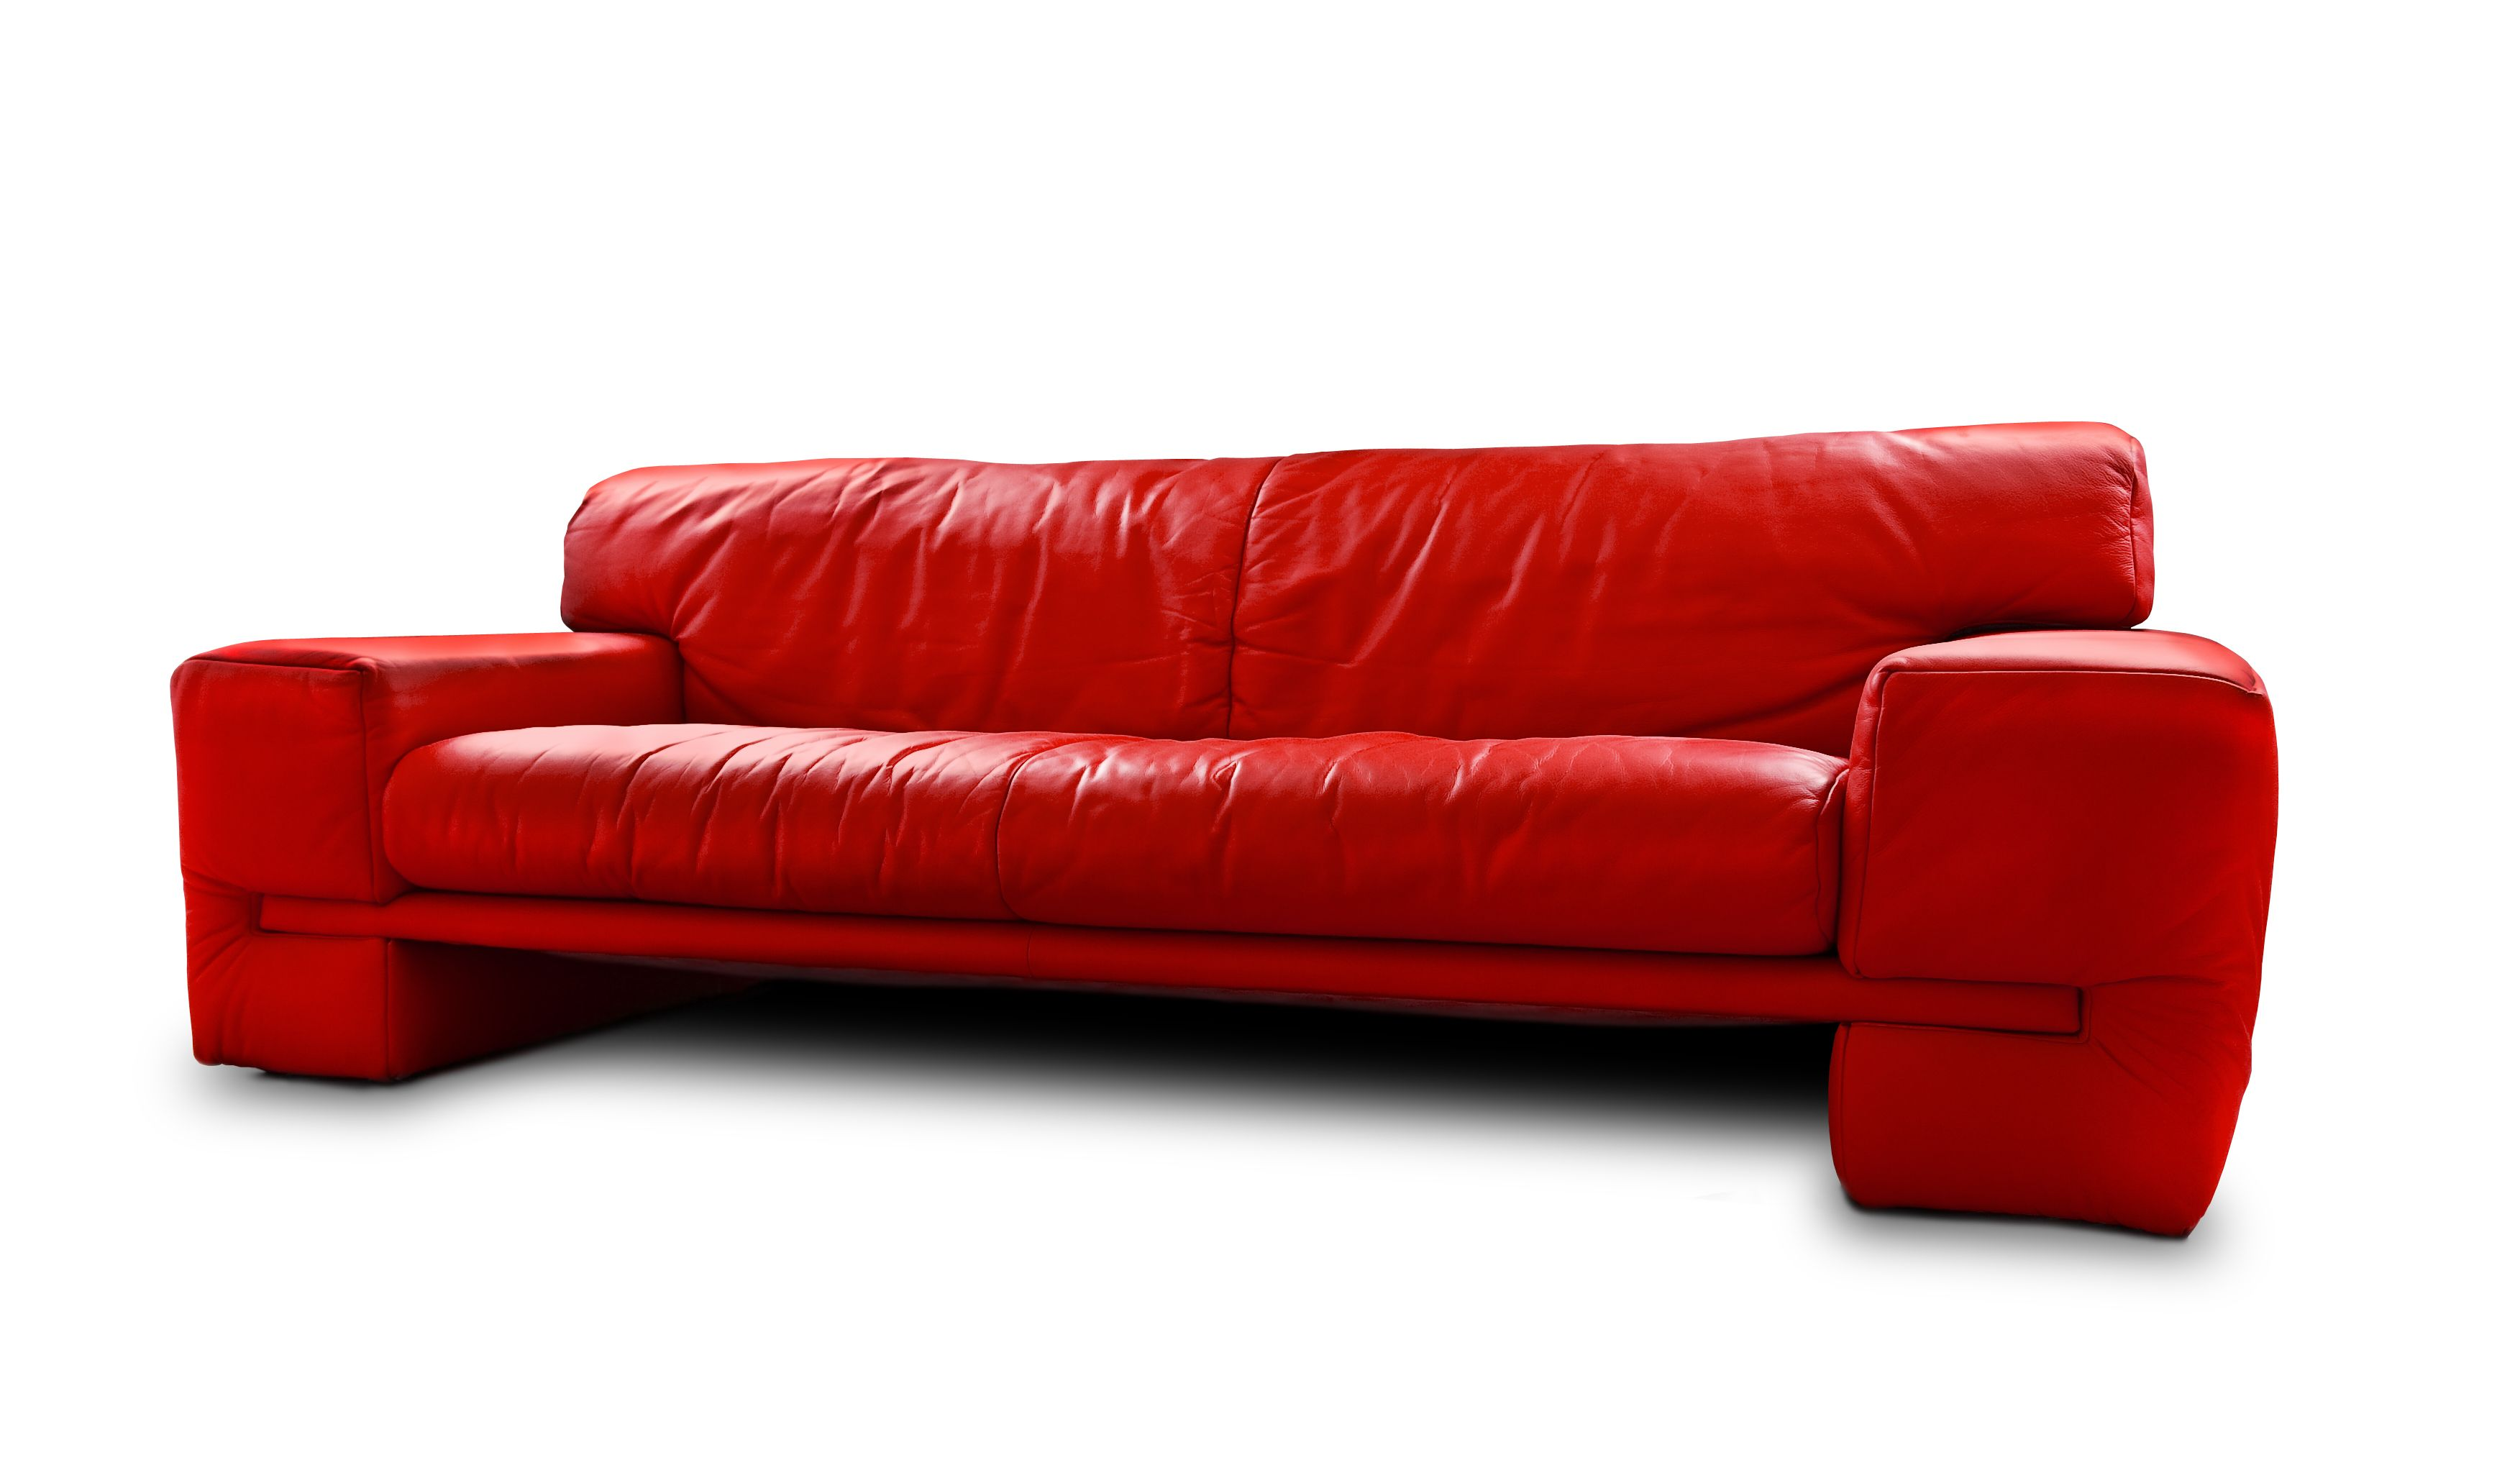 couch full excellent leather modern avant sectional mavria home size red couches italian sofa design of decorative set chair loveseat